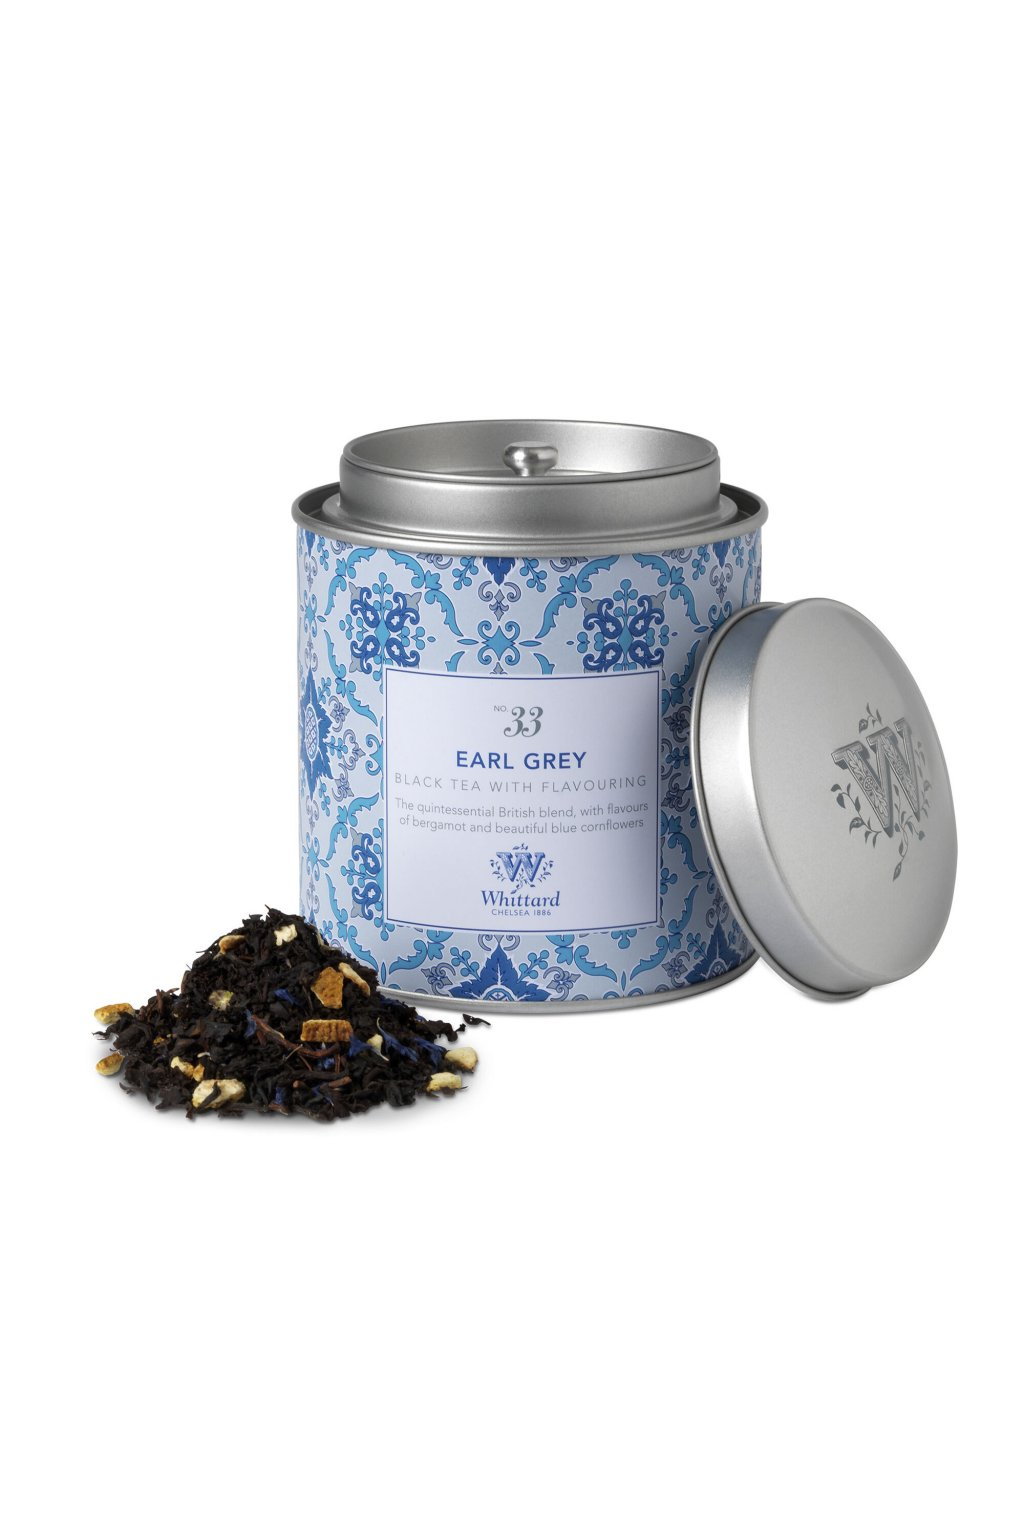 325704 Tea Discoveries Earl Grey Caddy 2